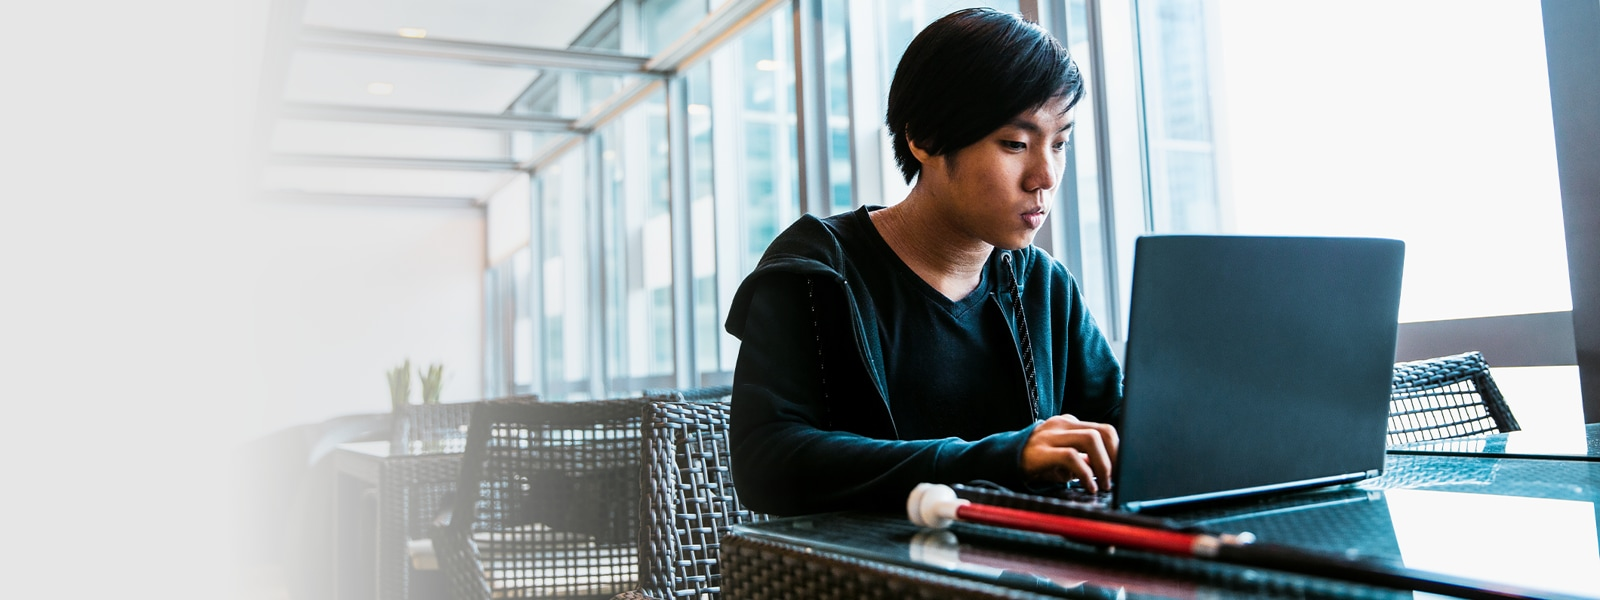 Joshua, a tech worker with visual impairment, uses assistive technology while visiting the Microsoft office in Singapore.